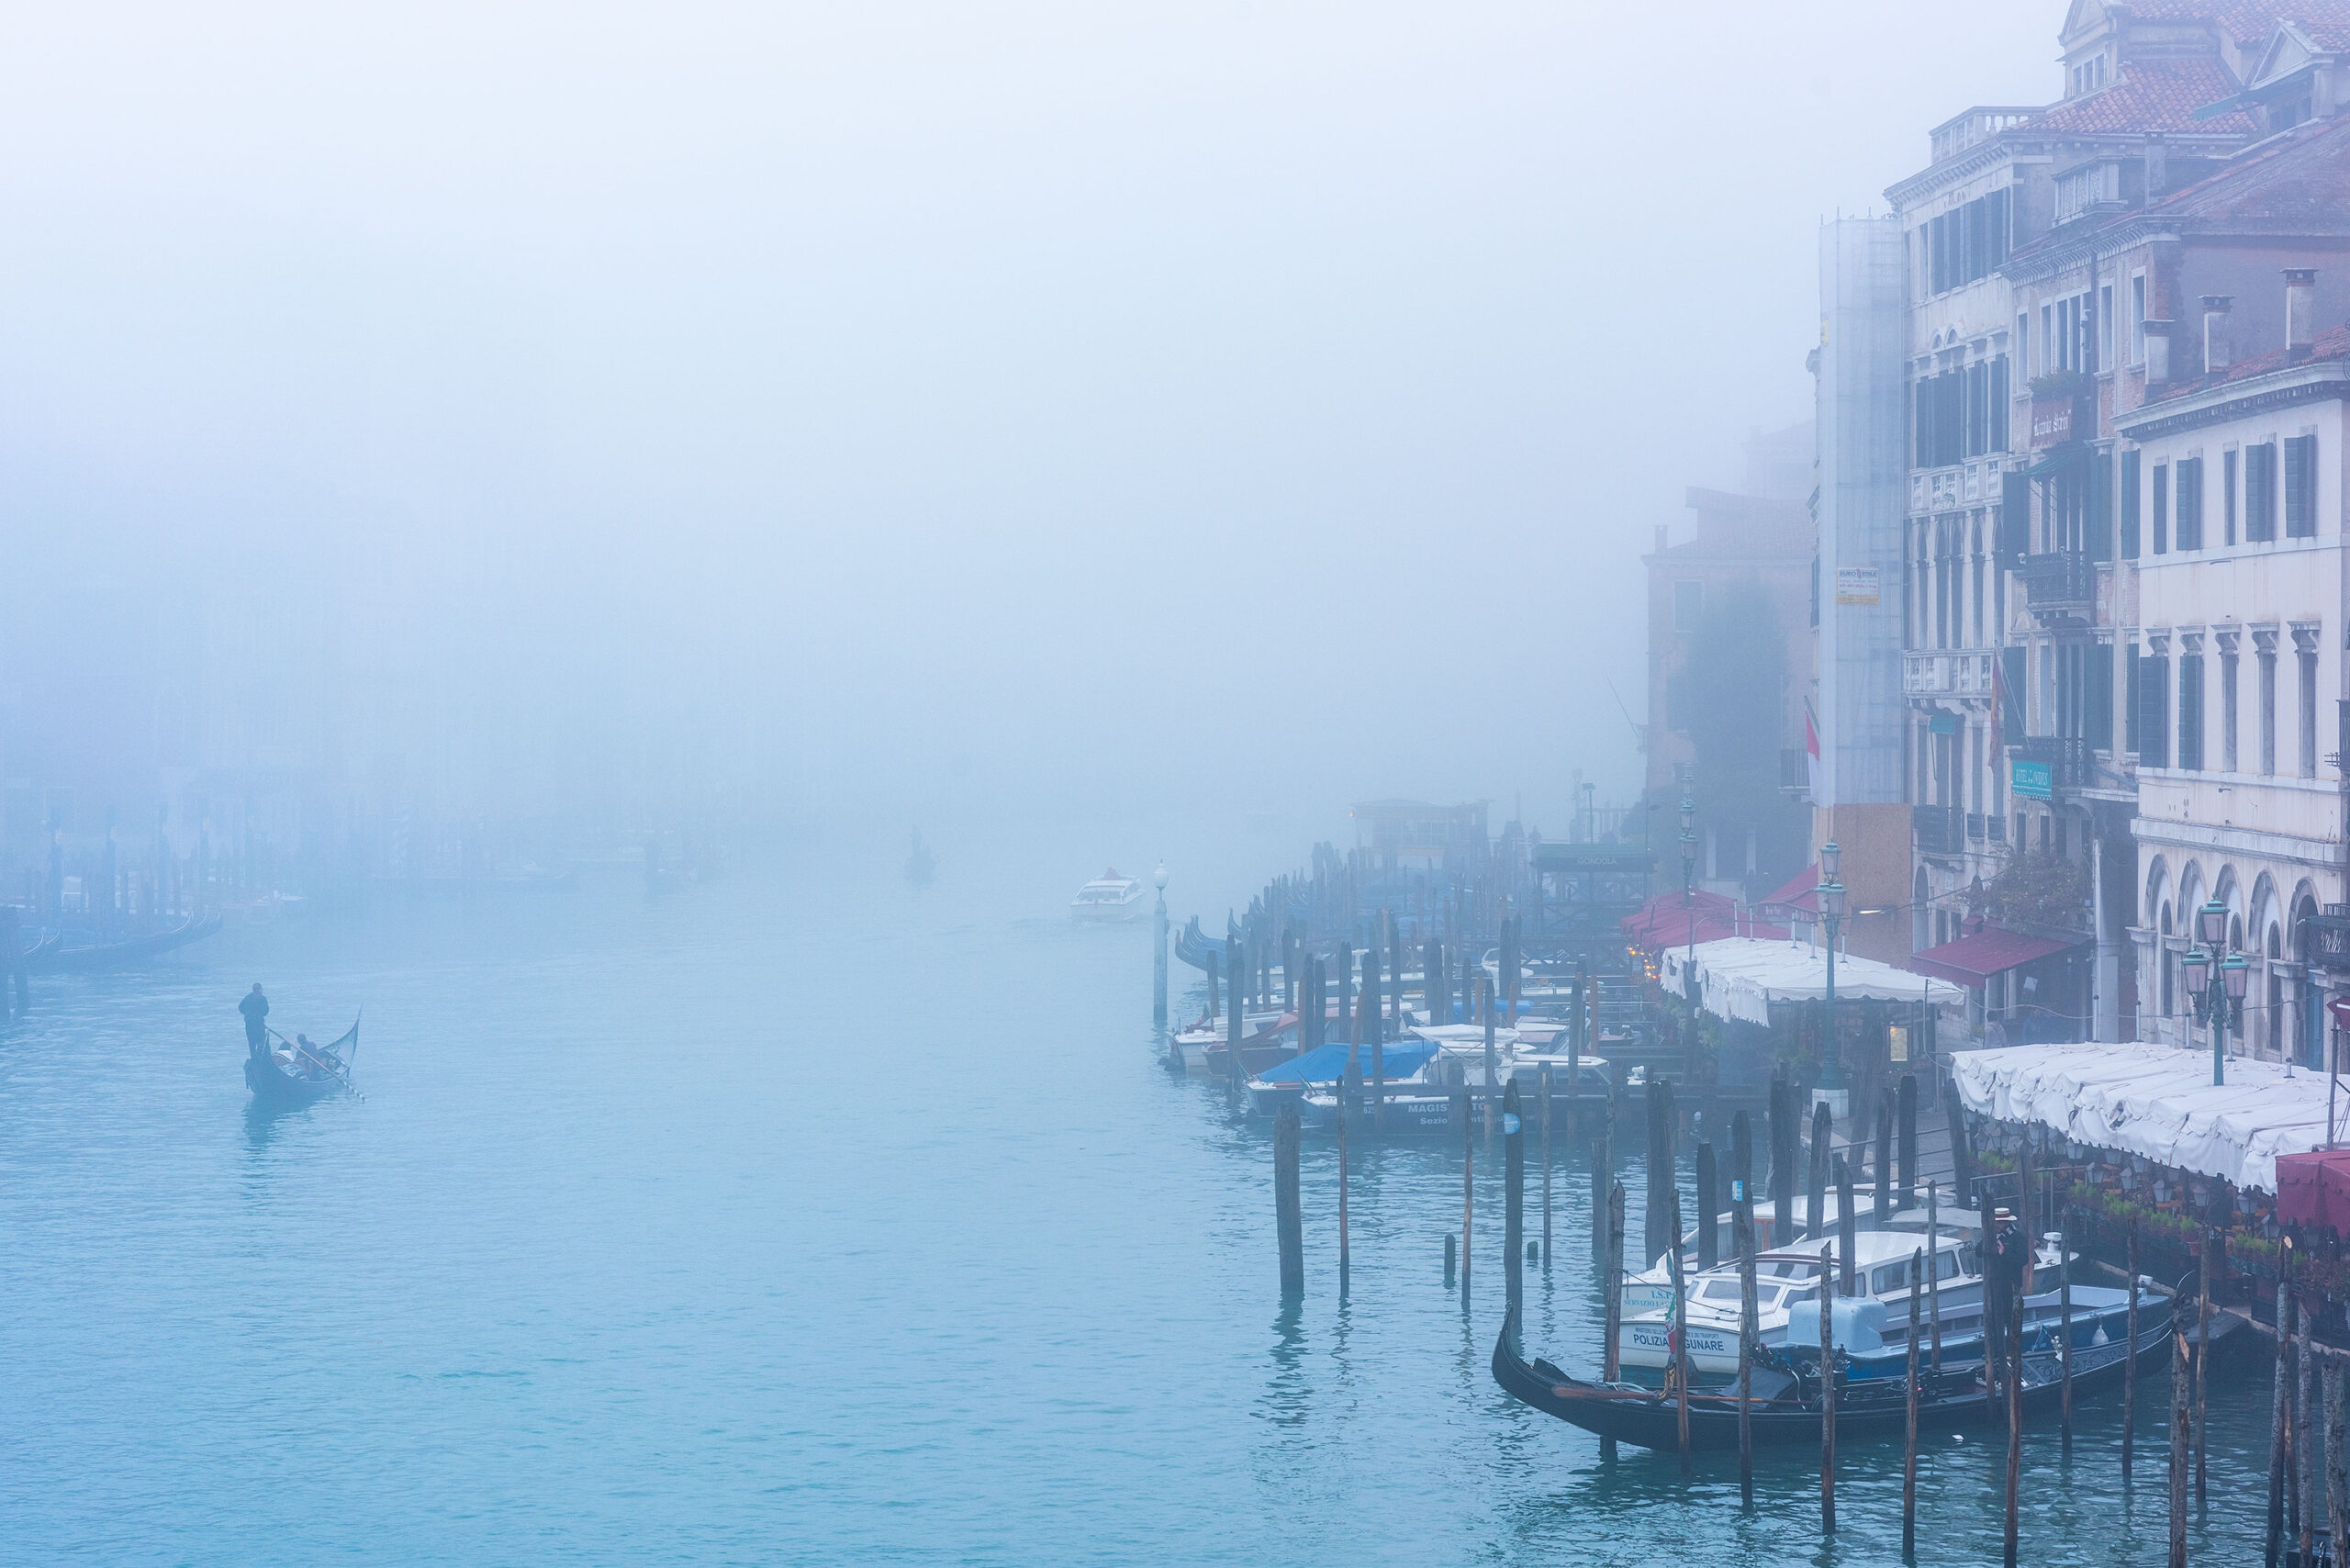 Photography of Venice by a foggy day.